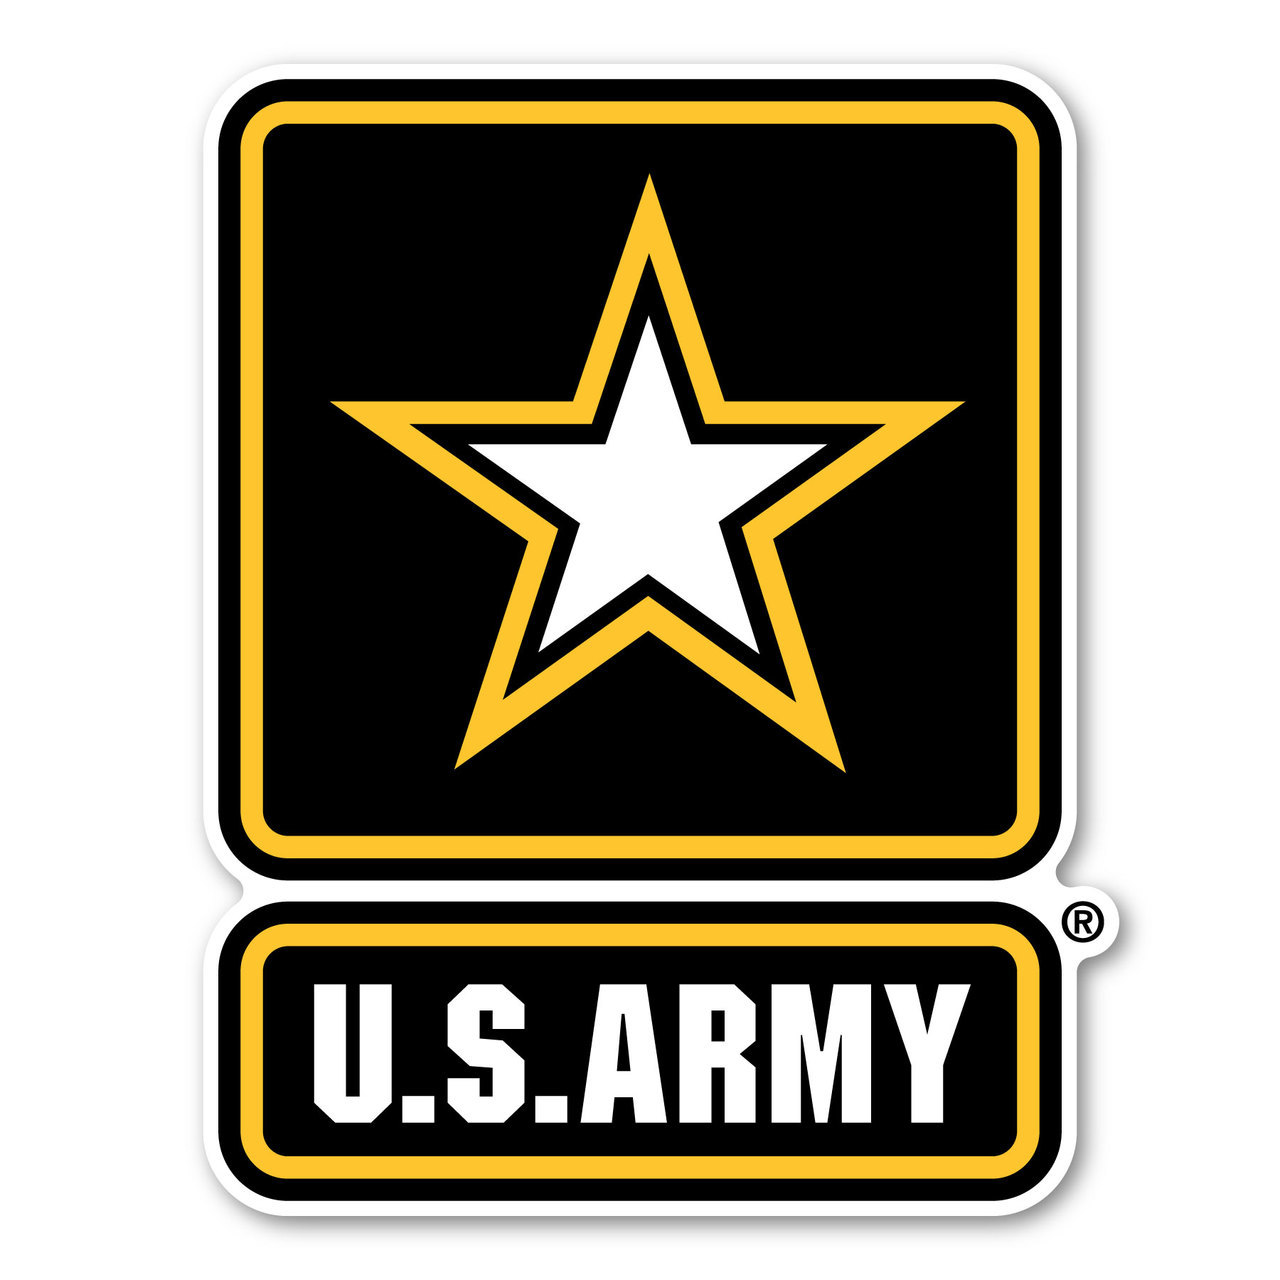 Army star logo clipart svg black and white download Army Star Logo Magnet svg black and white download